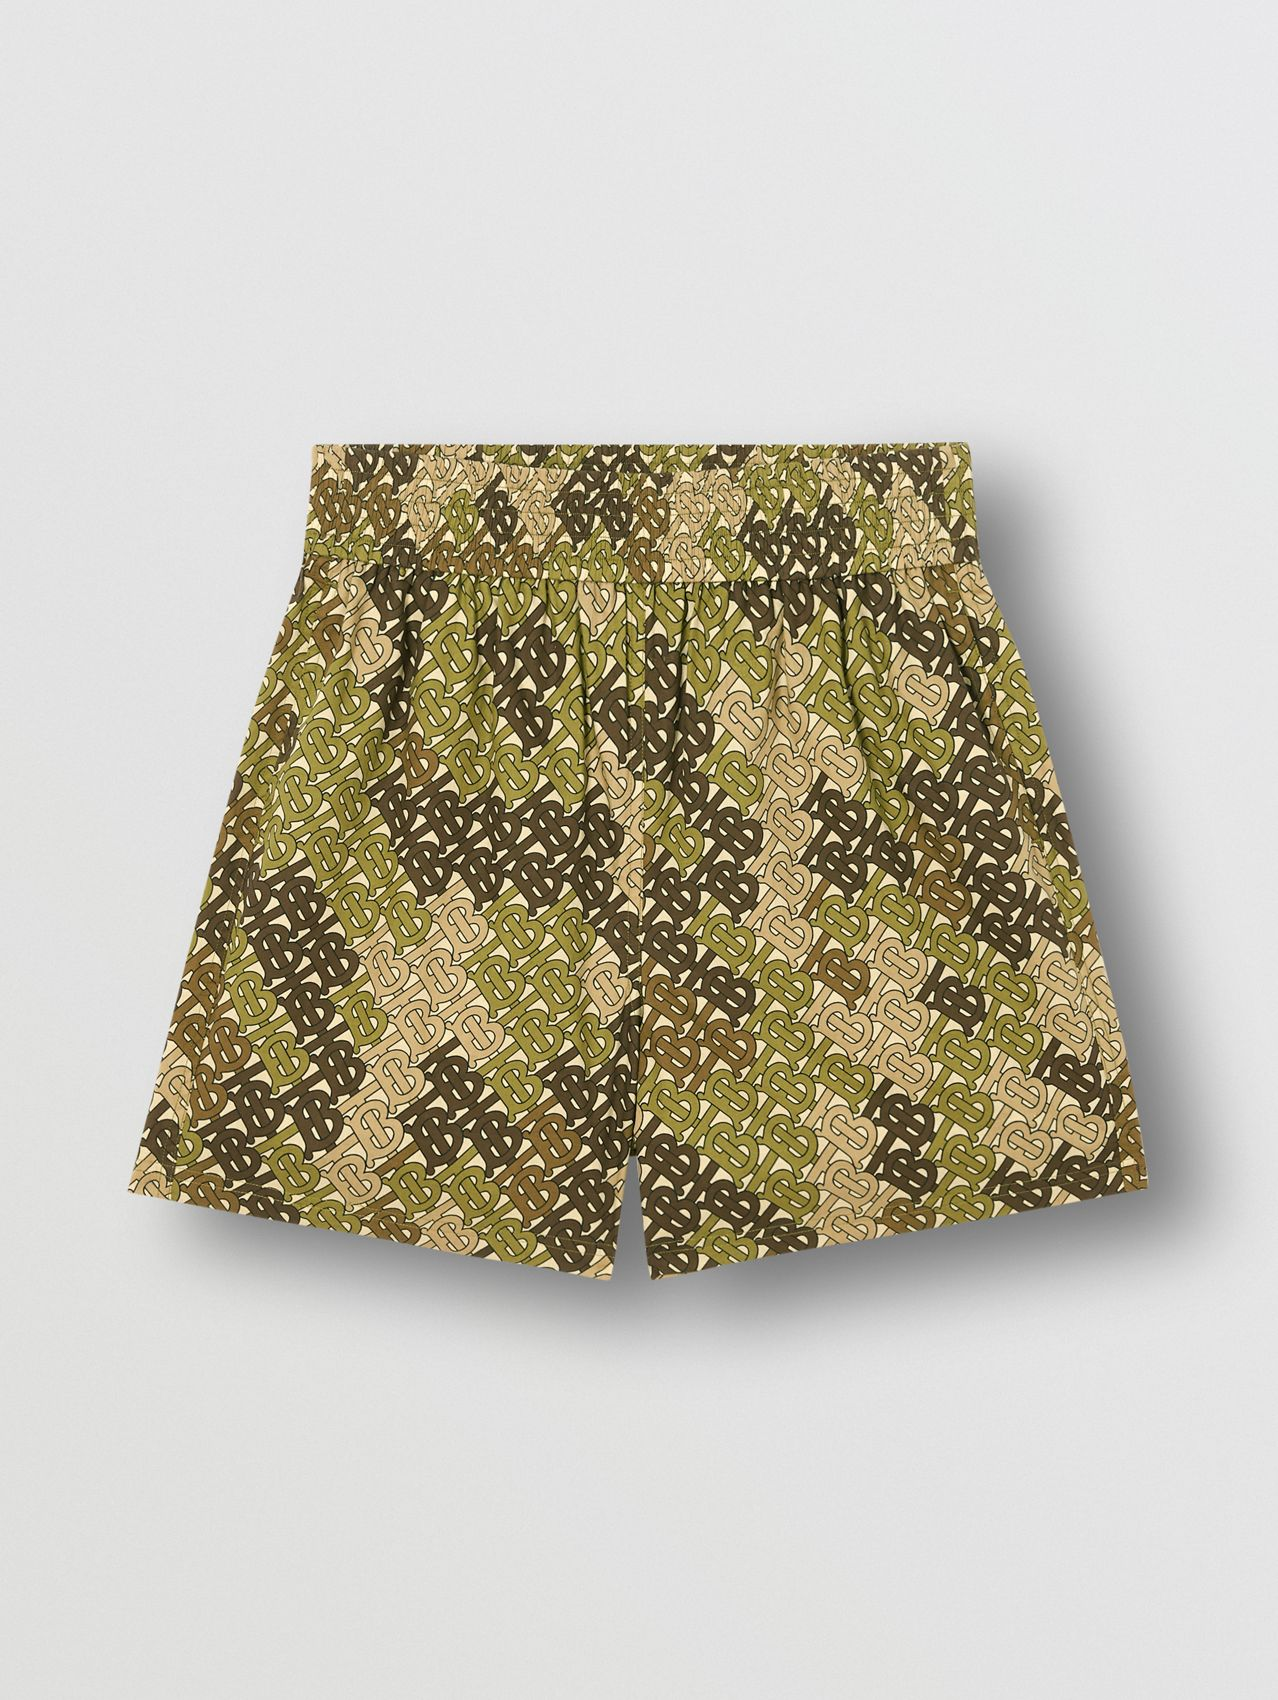 Monogram Print Cotton Poplin Shorts in Khaki Green